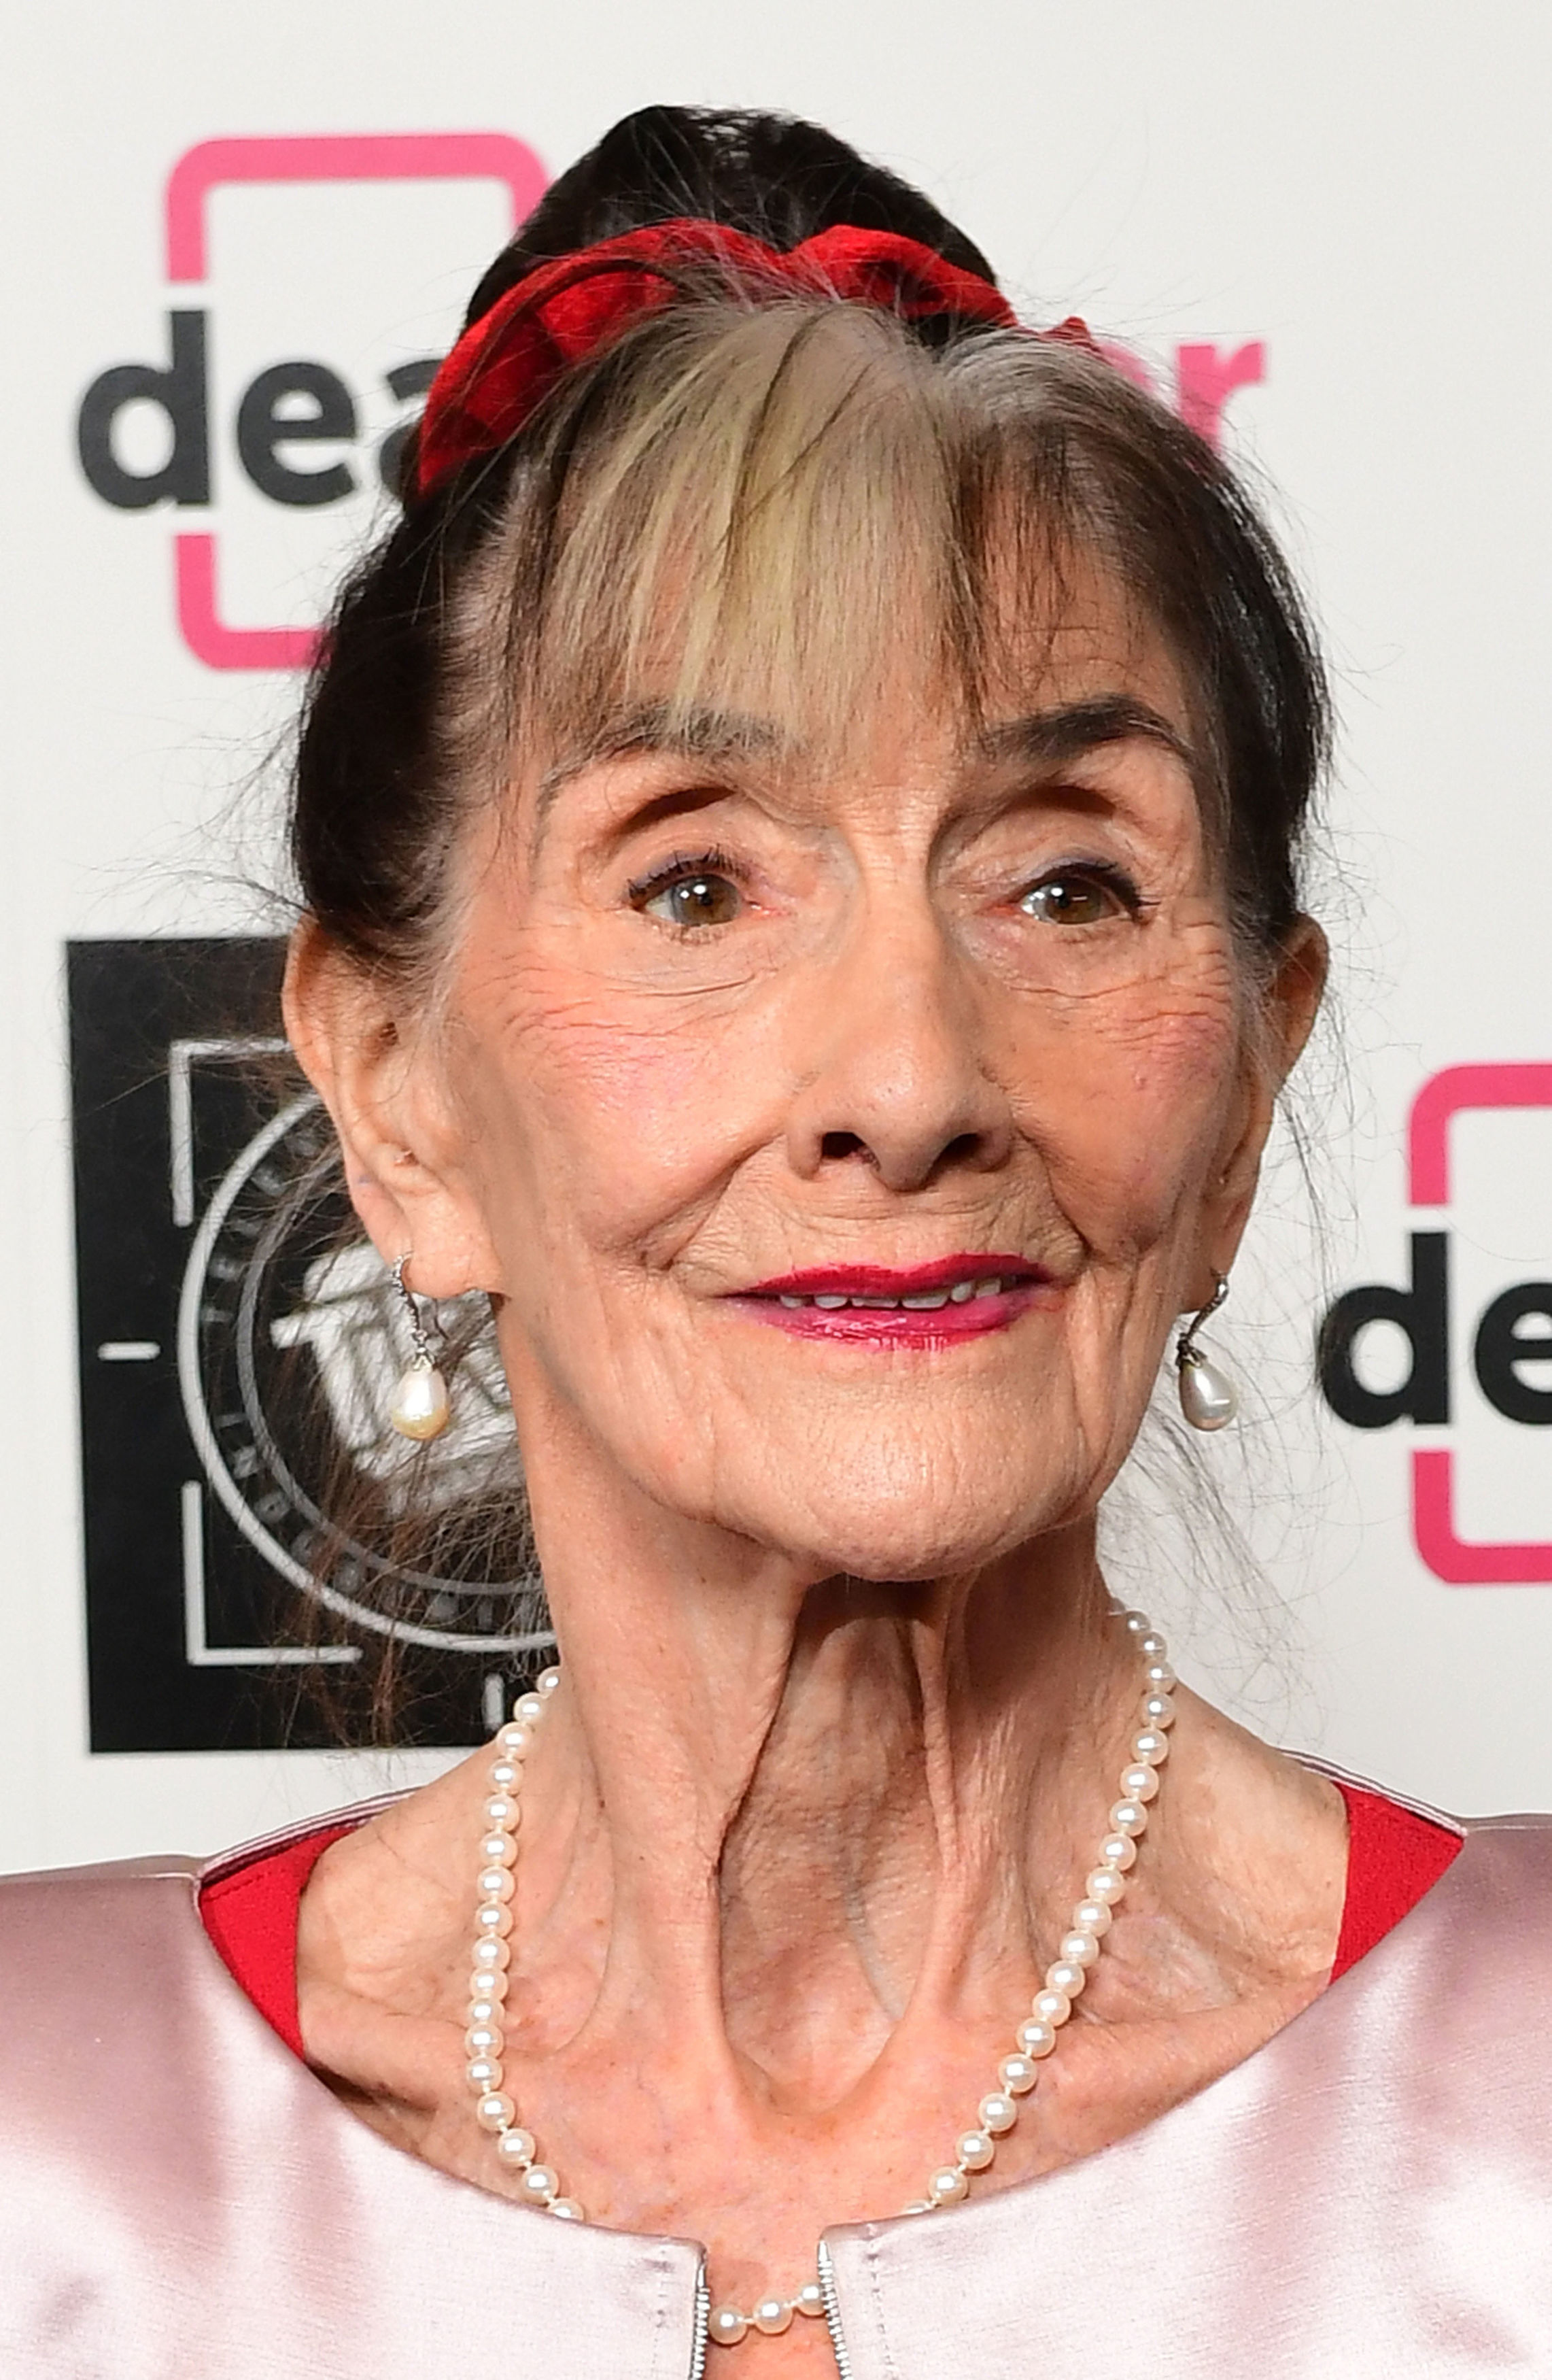 June Brown says she got sick of sex about 20 years ago. Credit: PA